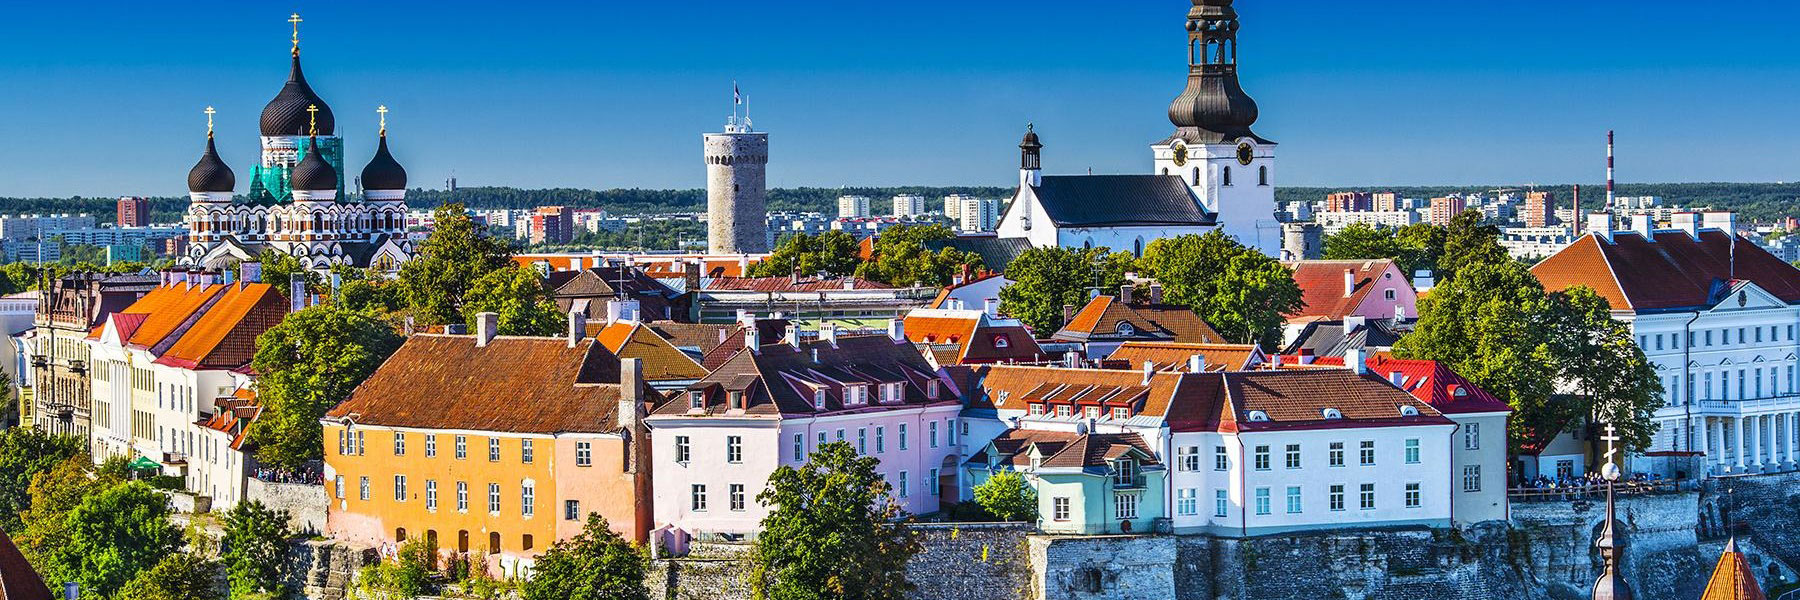 Tallinn's colorful houses next to each other with St. Nicholas church and Alexander Nevsky Cathedral Estonia